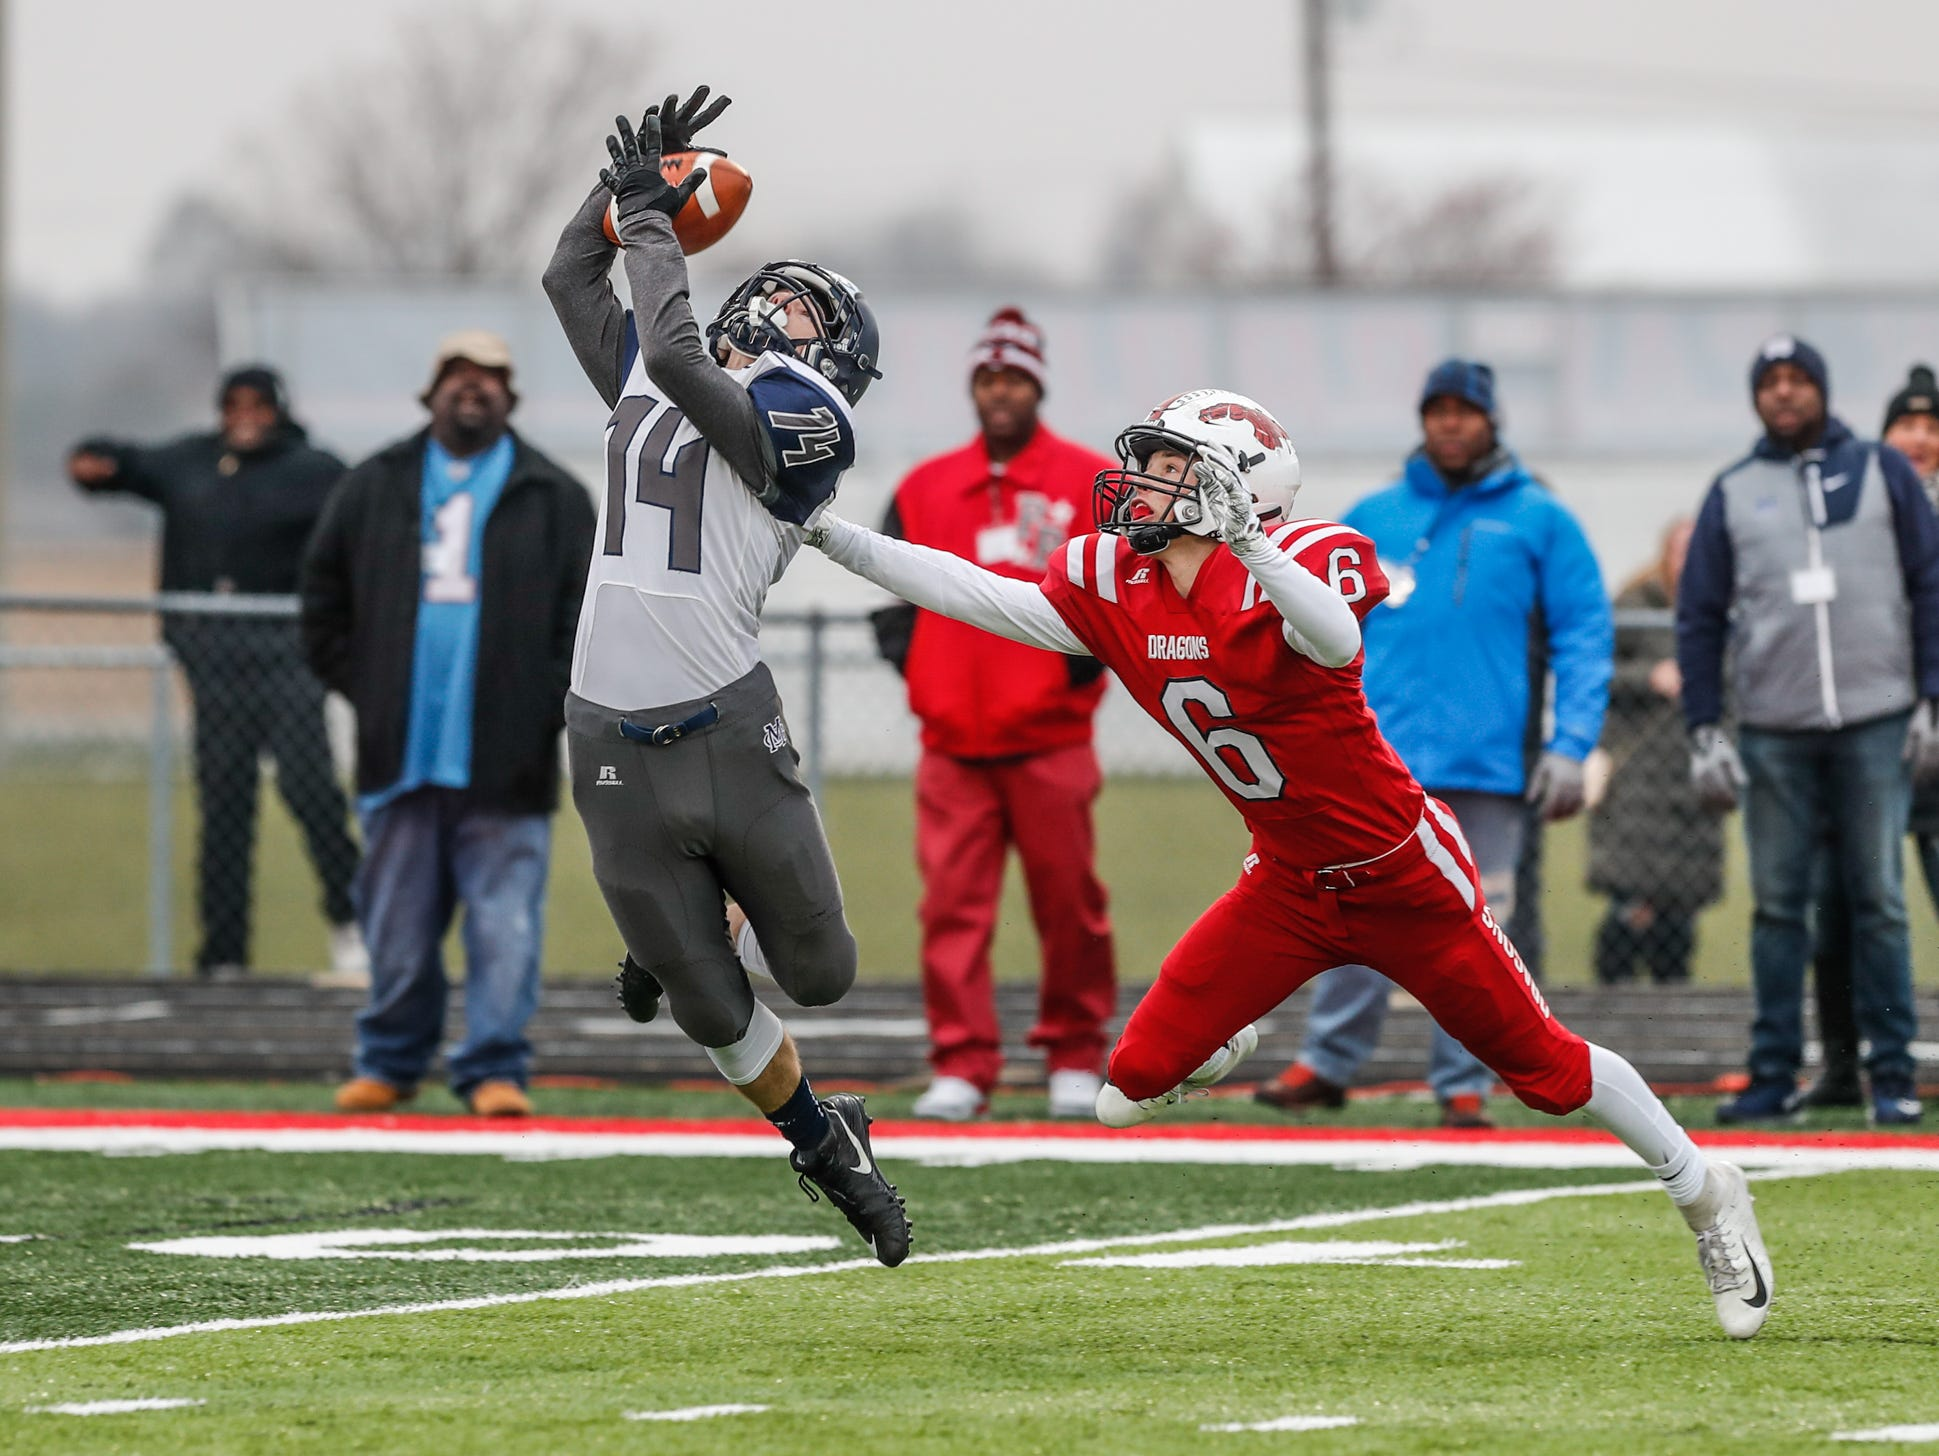 Michigan City High School's wide receiver Zennon Wilhelm (14), gets around New Palestine High School's Brody Luker (6), to make an amazing catch during the I.H.S.A.A class 5A Semi-state game between New Palestine High School and Michigan City High School on Saturday, Nov. 17, 2018.